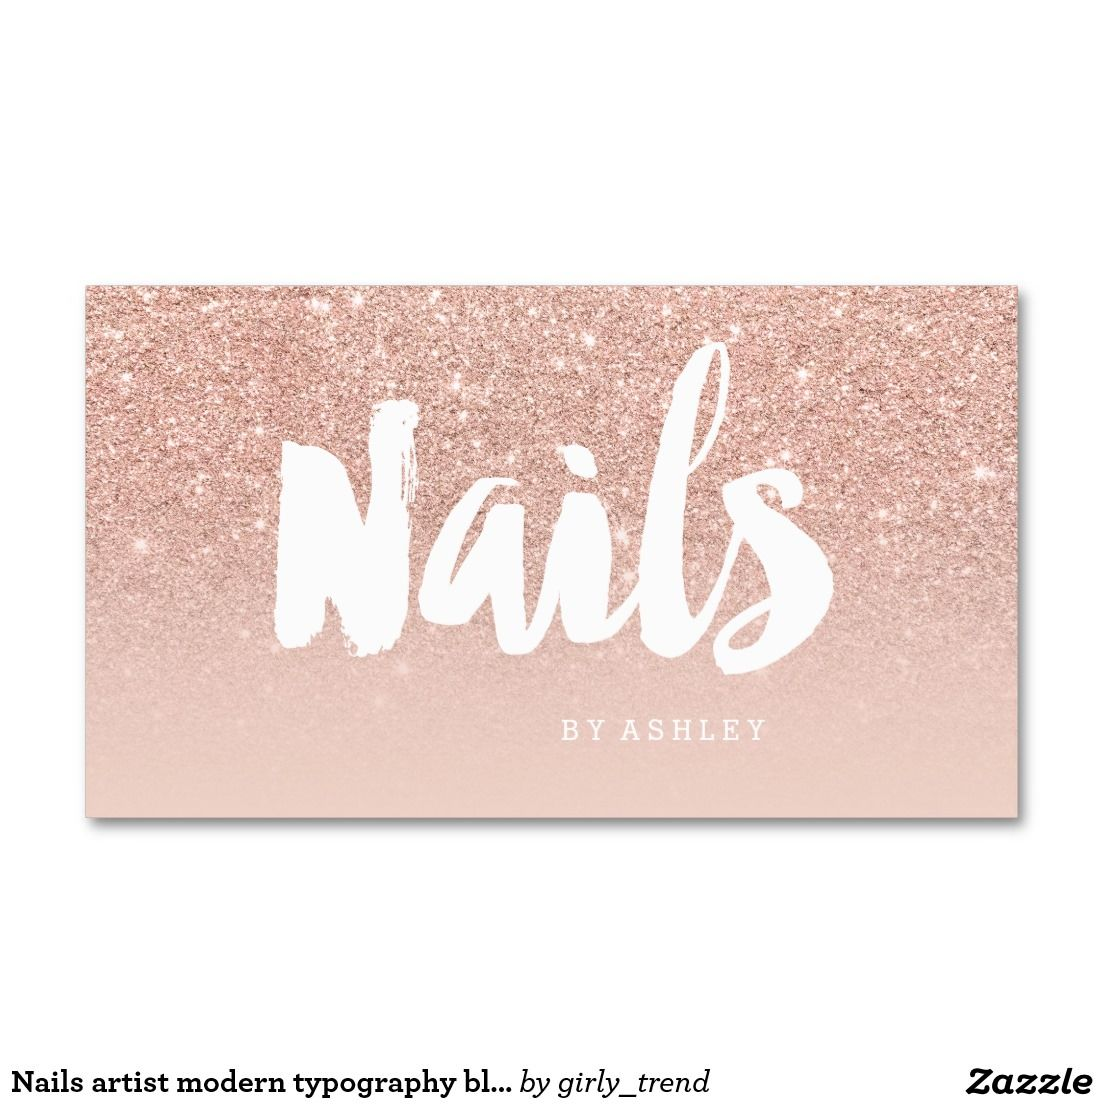 Nails artist modern typography blush rose gold business card ...